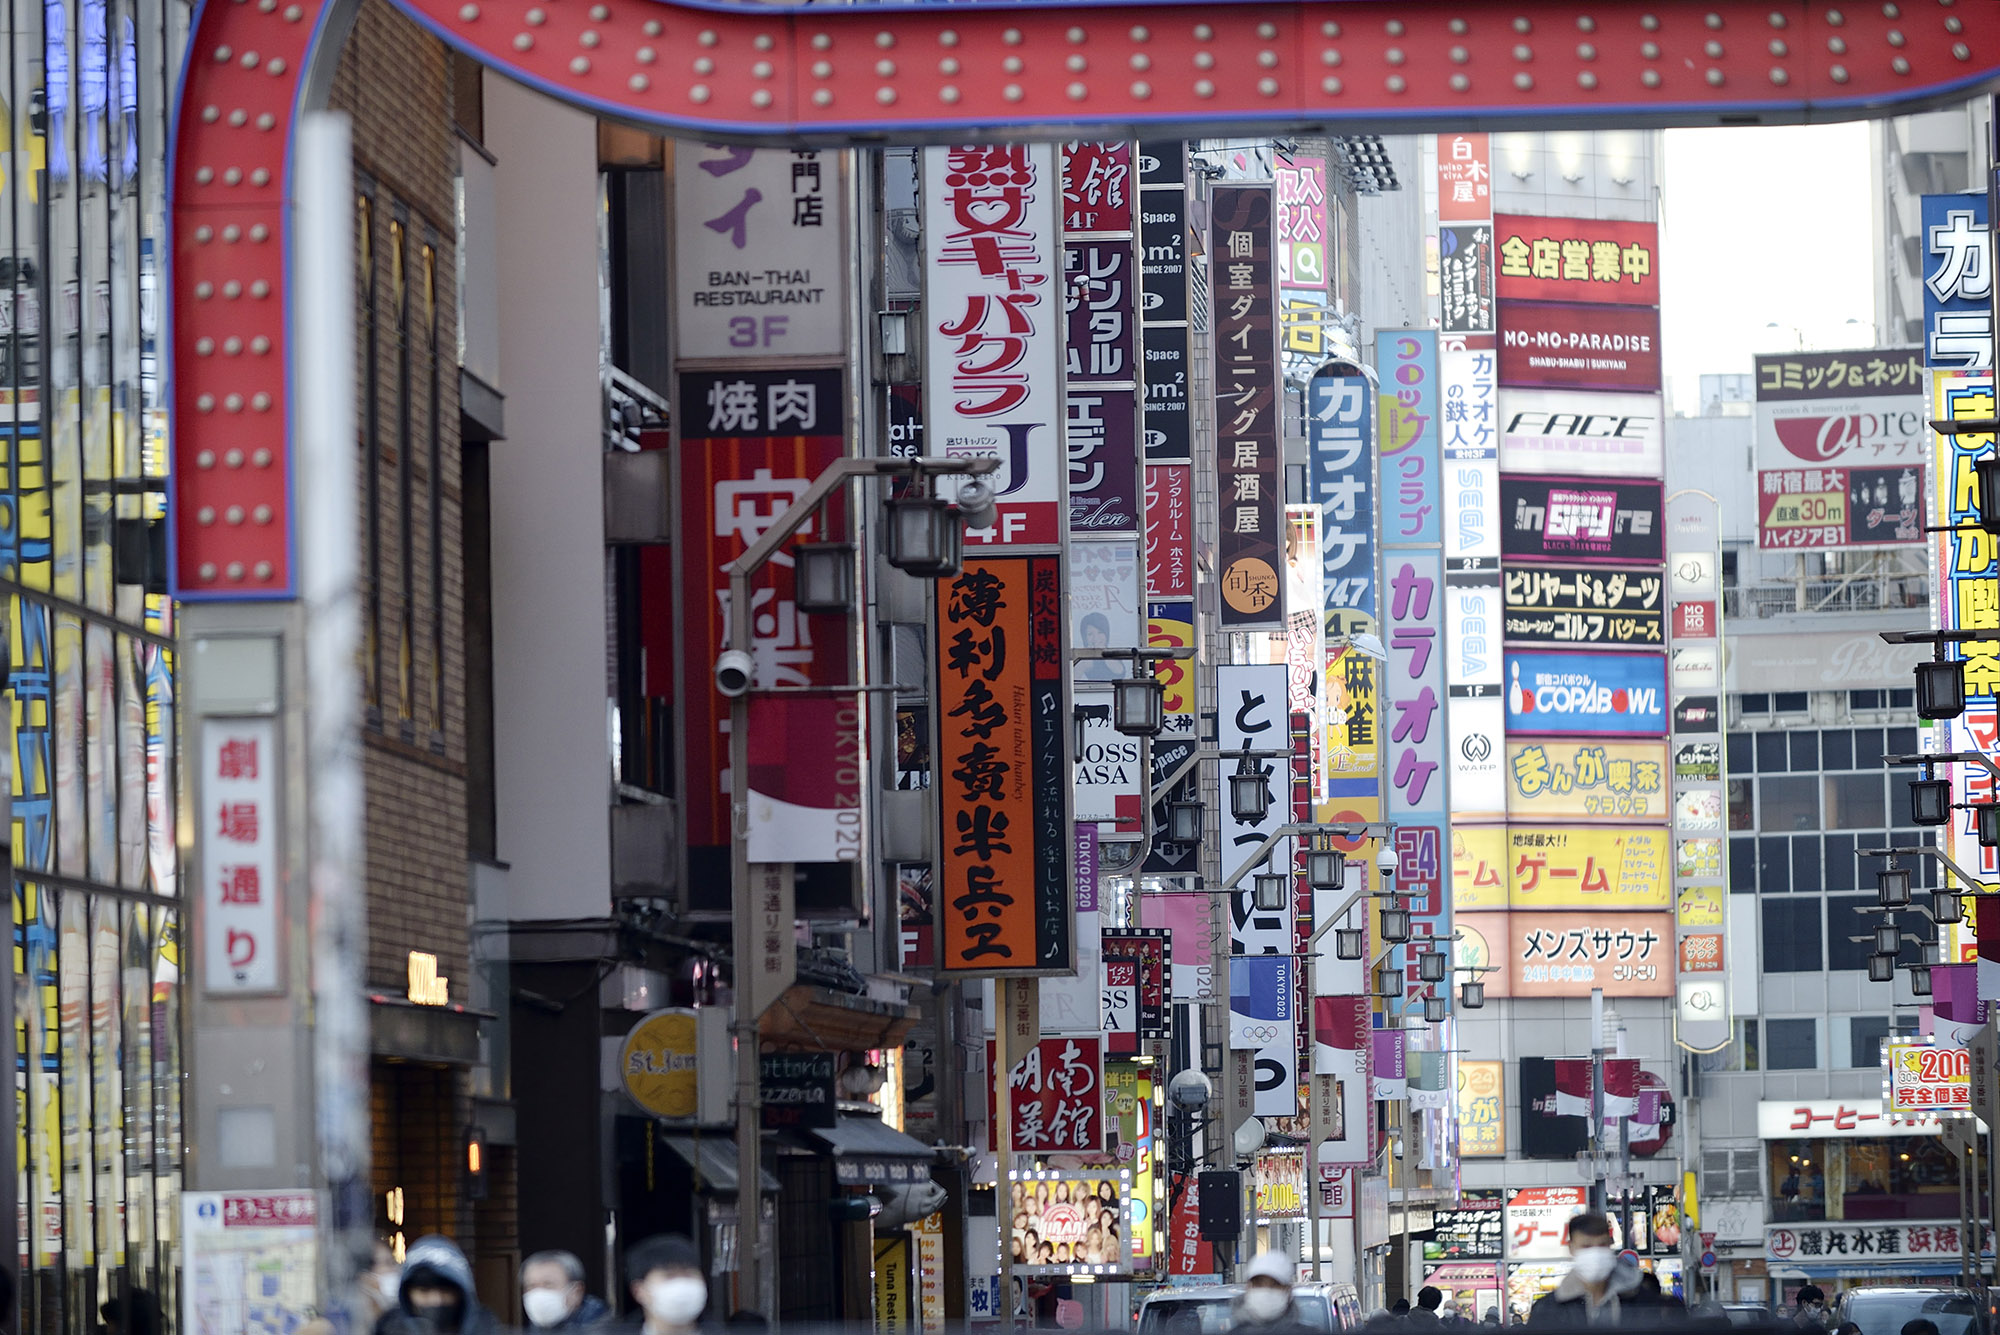 A view of signs of bars and restaurants in Shinjuku District in Tokyo, Japan on January 13, 2021.